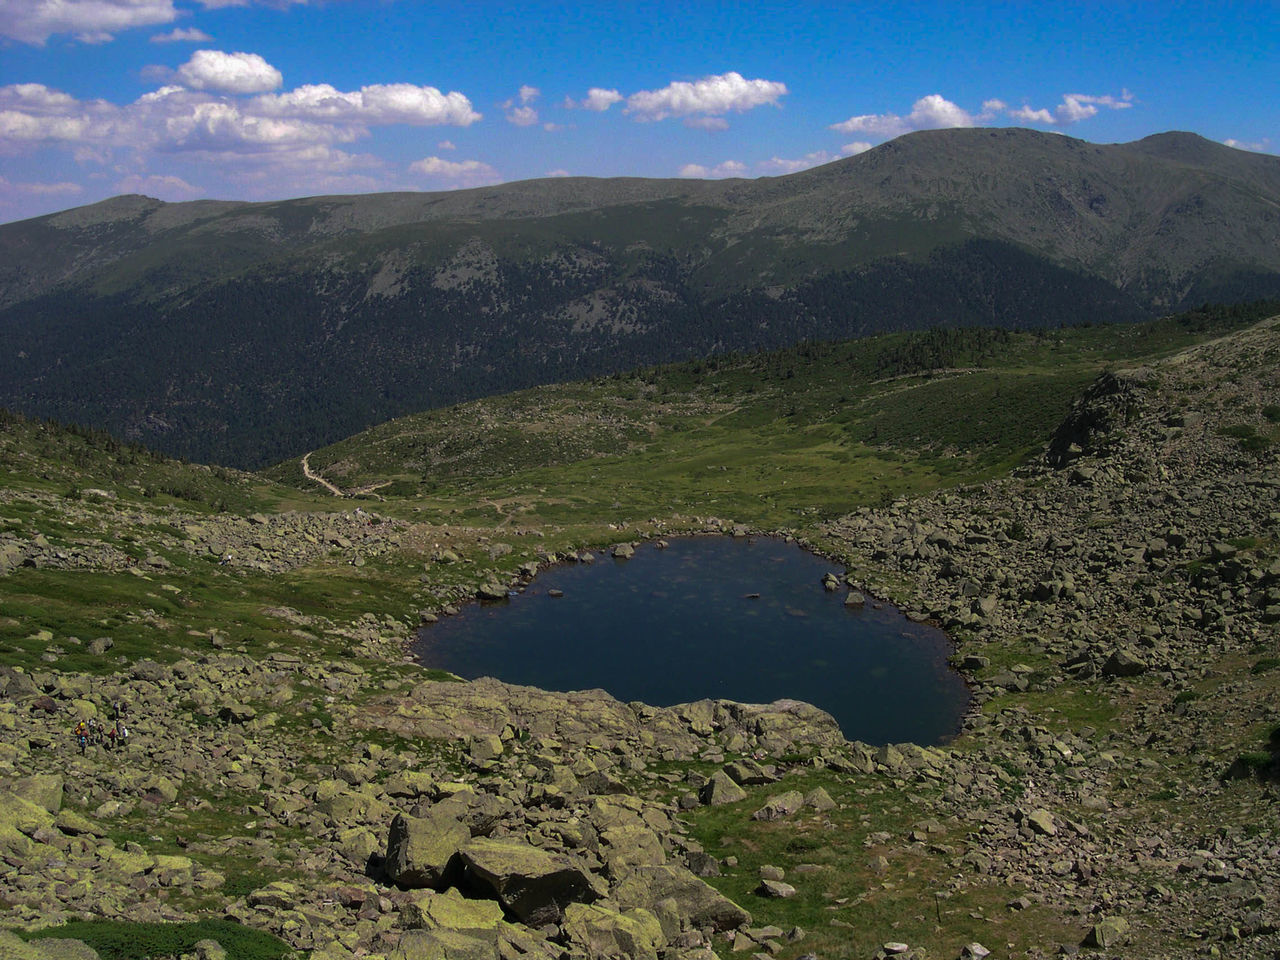 Beauty In Nature Day España🇪🇸 Guadarrama Lake Landscape Madrid Mountain Mountain Range Mountains National Park Nature Nature Reserve No People Outdoors Peñalara Sierra De Guadarrama Sierra De Madrid SPAIN